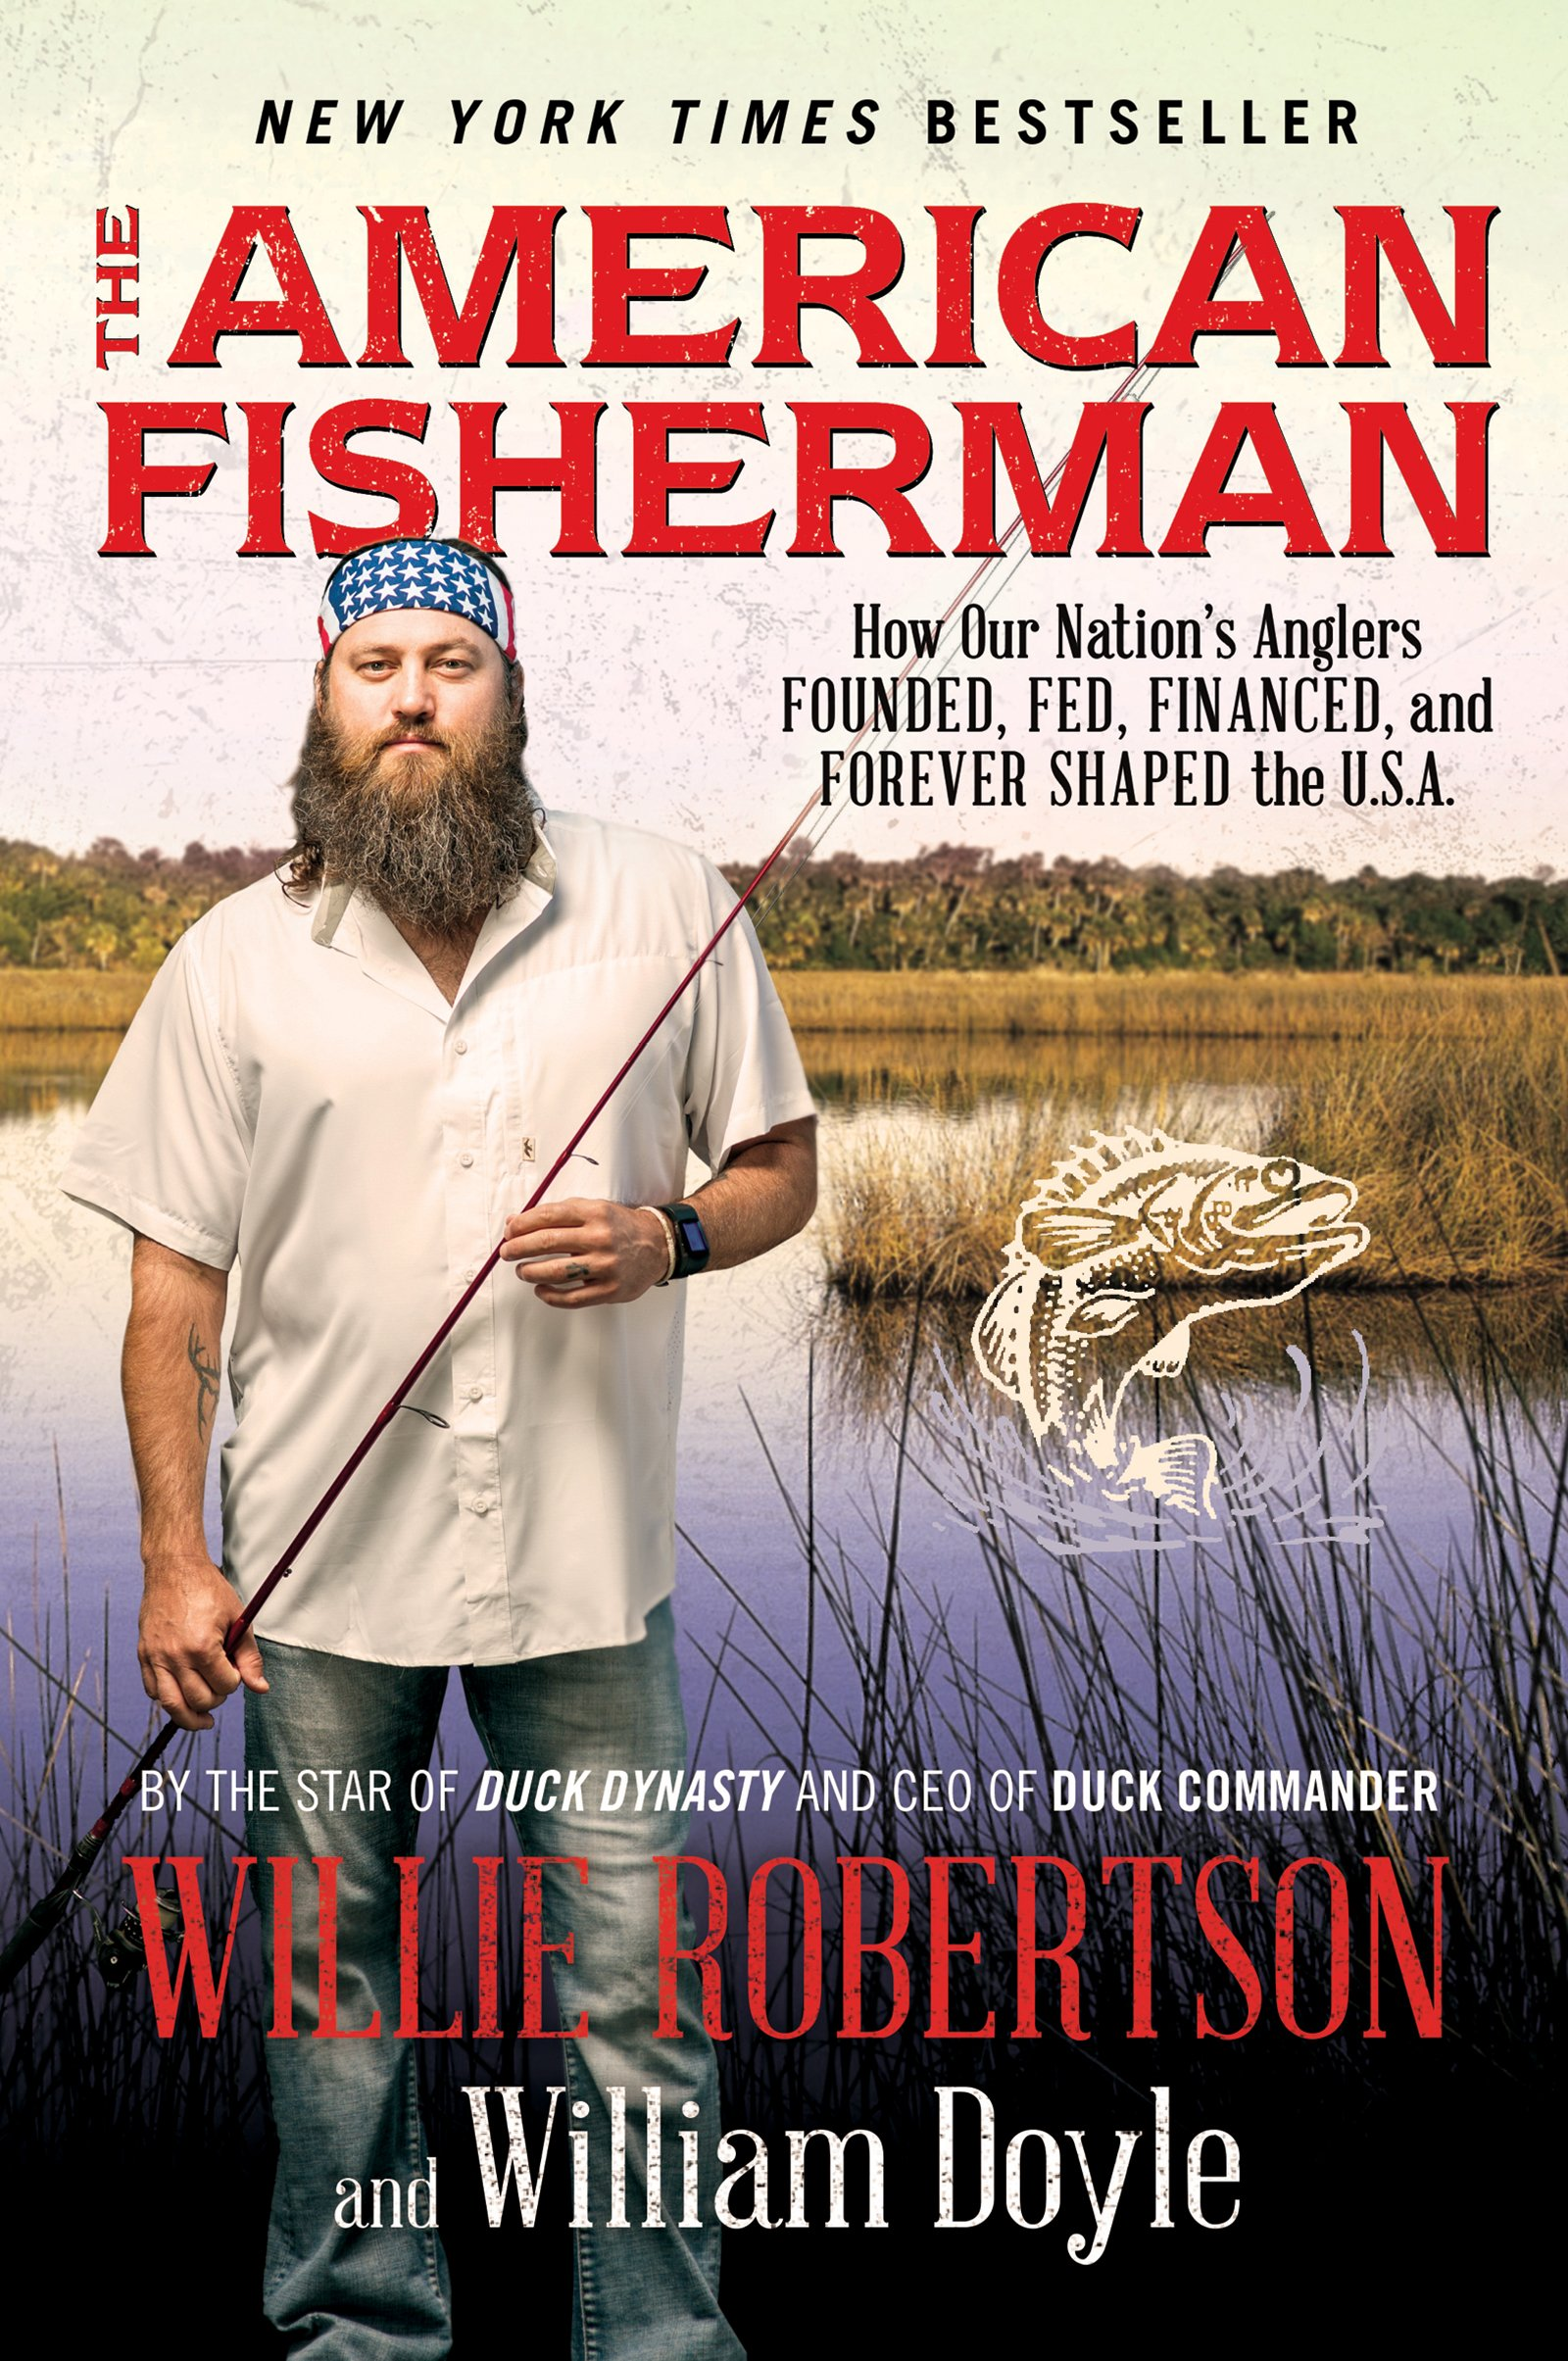 The American Fisherman: How Our Nation's Anglers Founded